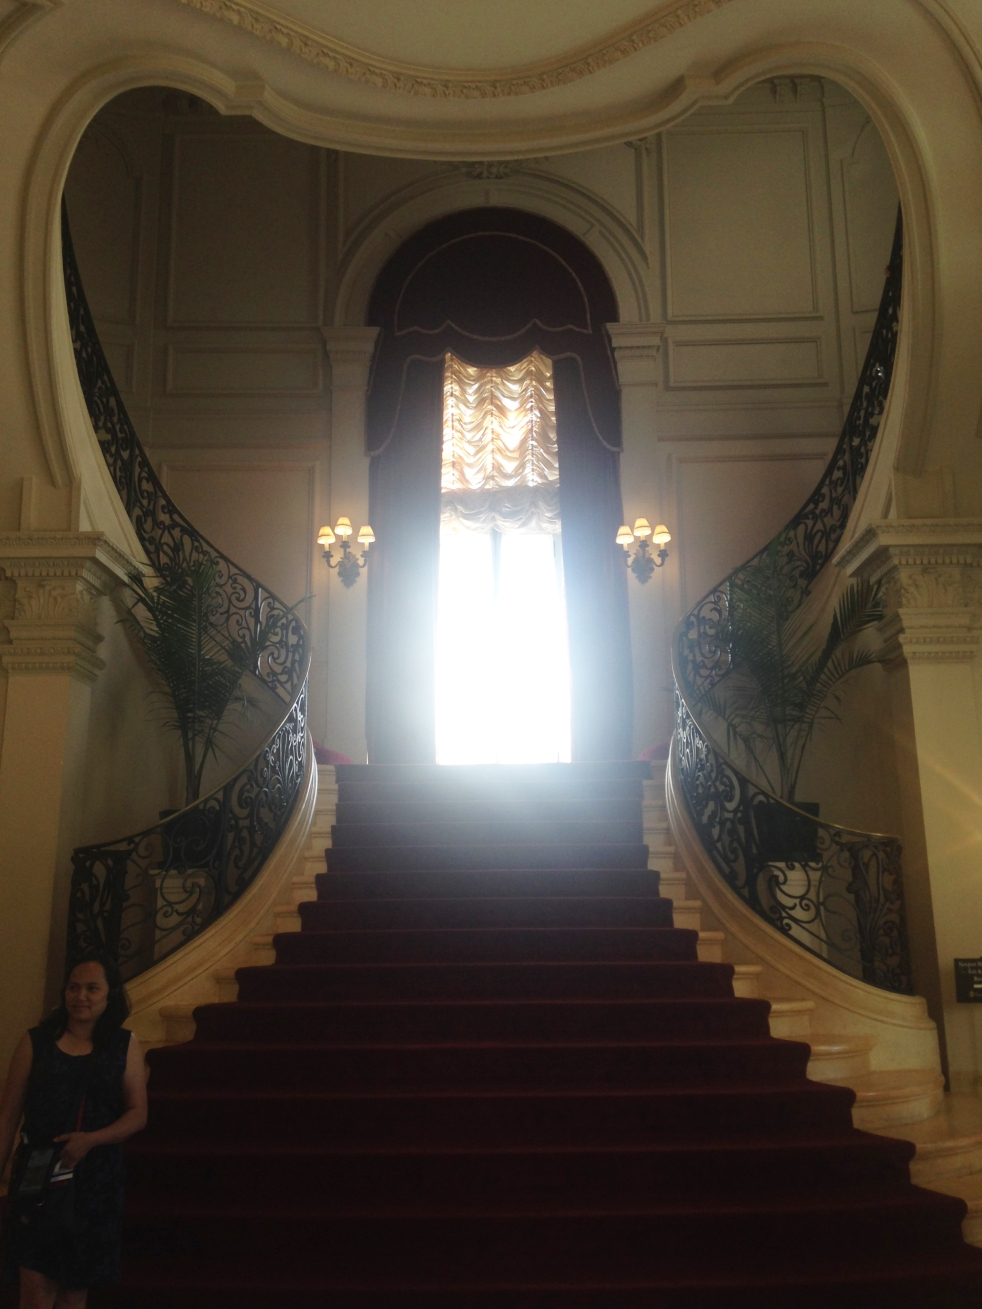 Rosecliff staircase